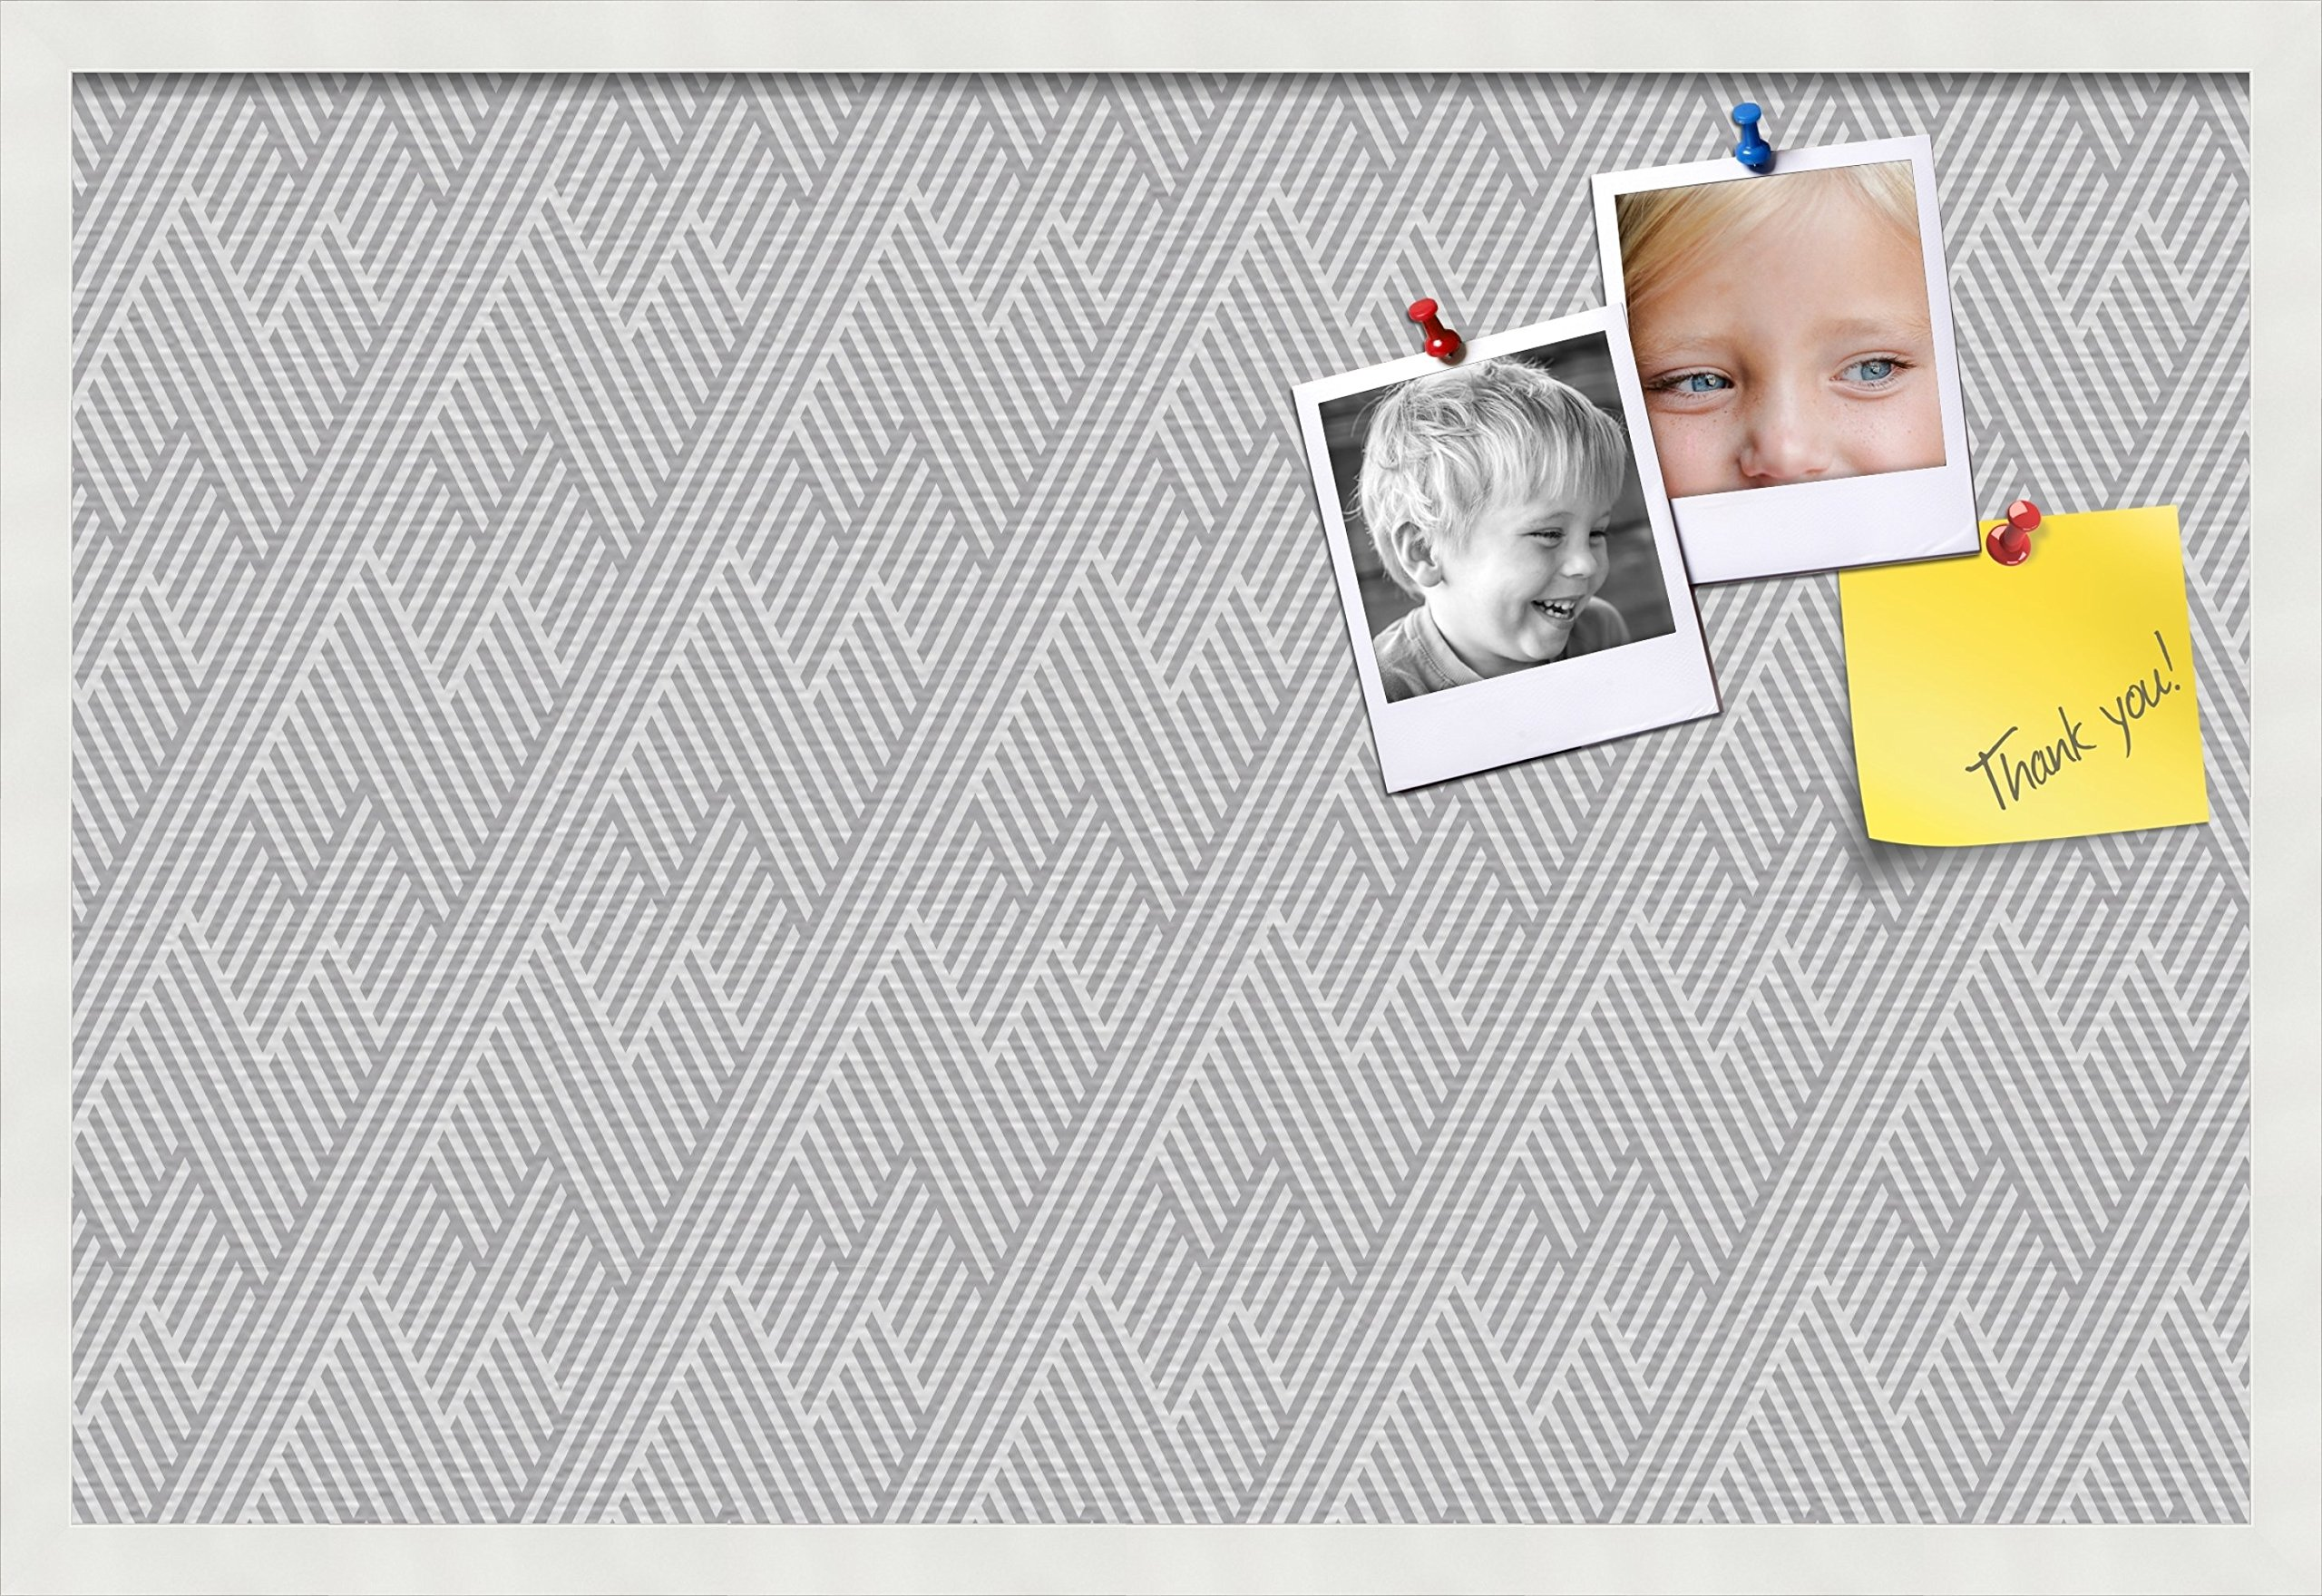 PinPix custom printed pin cork bulletin board made from canvas, Modeco Zig Zag Grey 30x20 Inches (Completed Size) and framed in Satin White Frame (PinPix-Group-65)